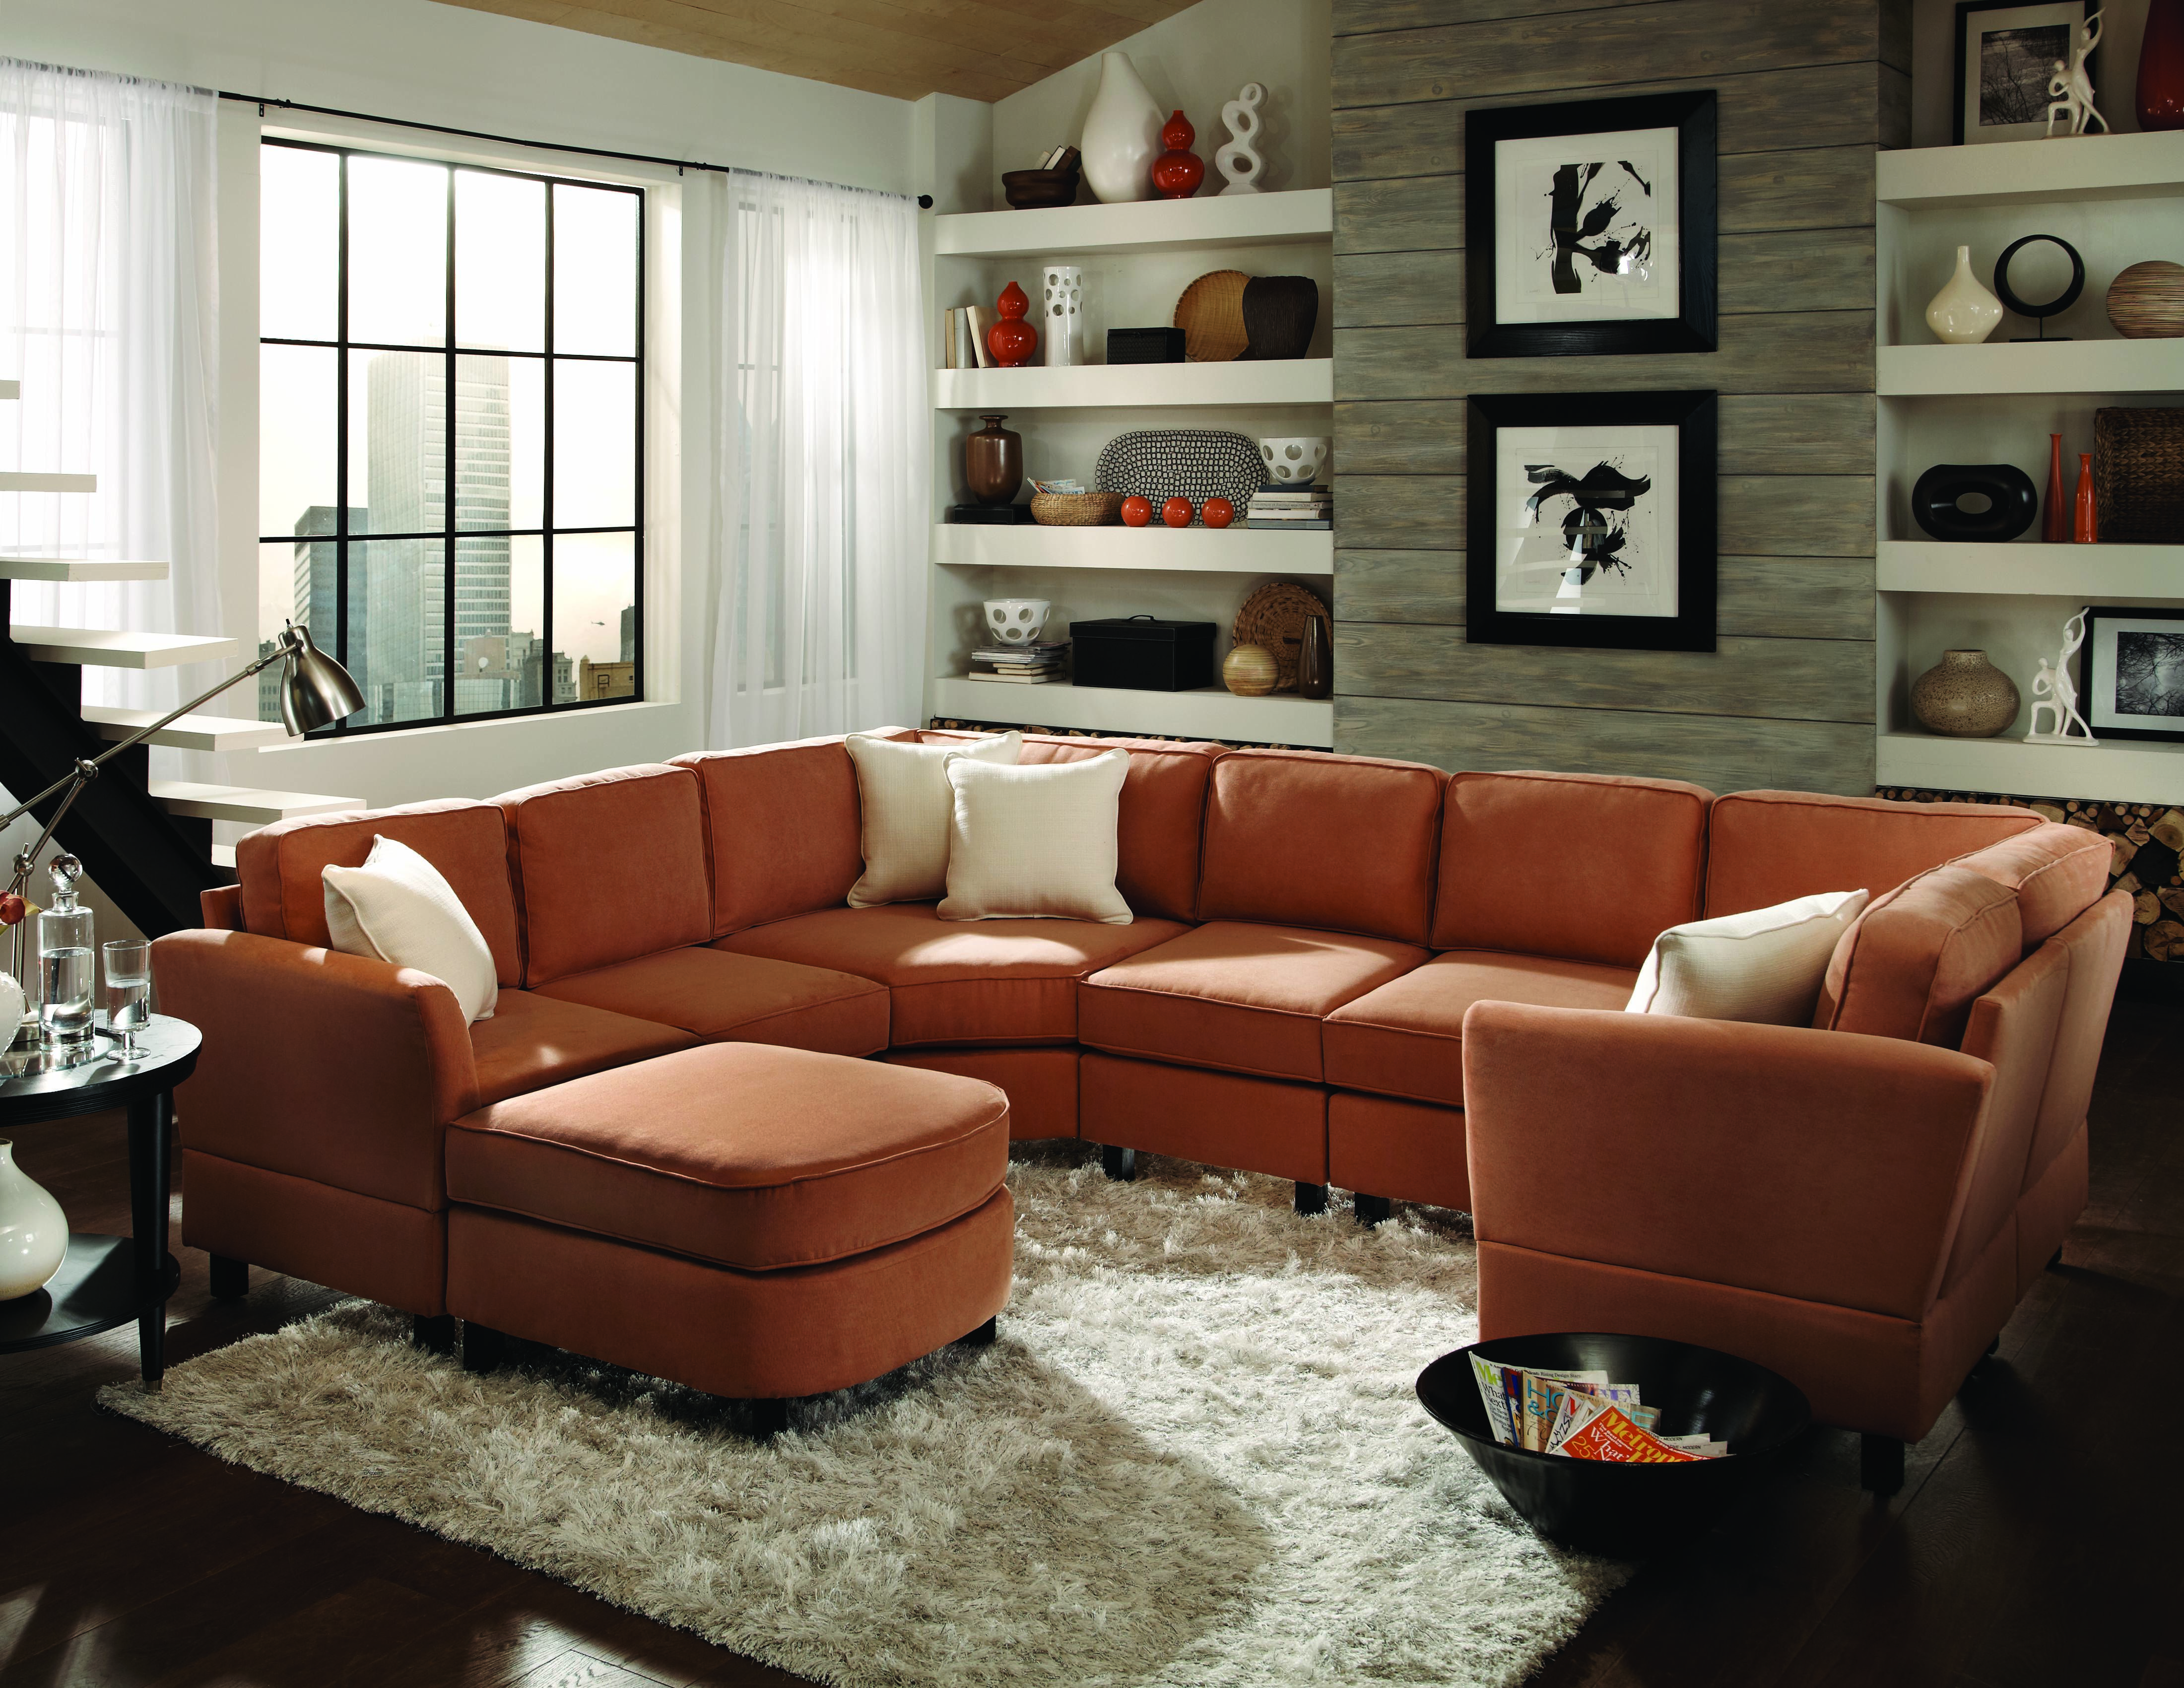 Best Sofas In The Usa Furniture For Small Spaces Made In Usa Furniture Simplicity Sofas Sofa Bed Living Room Small Sectional Sofa